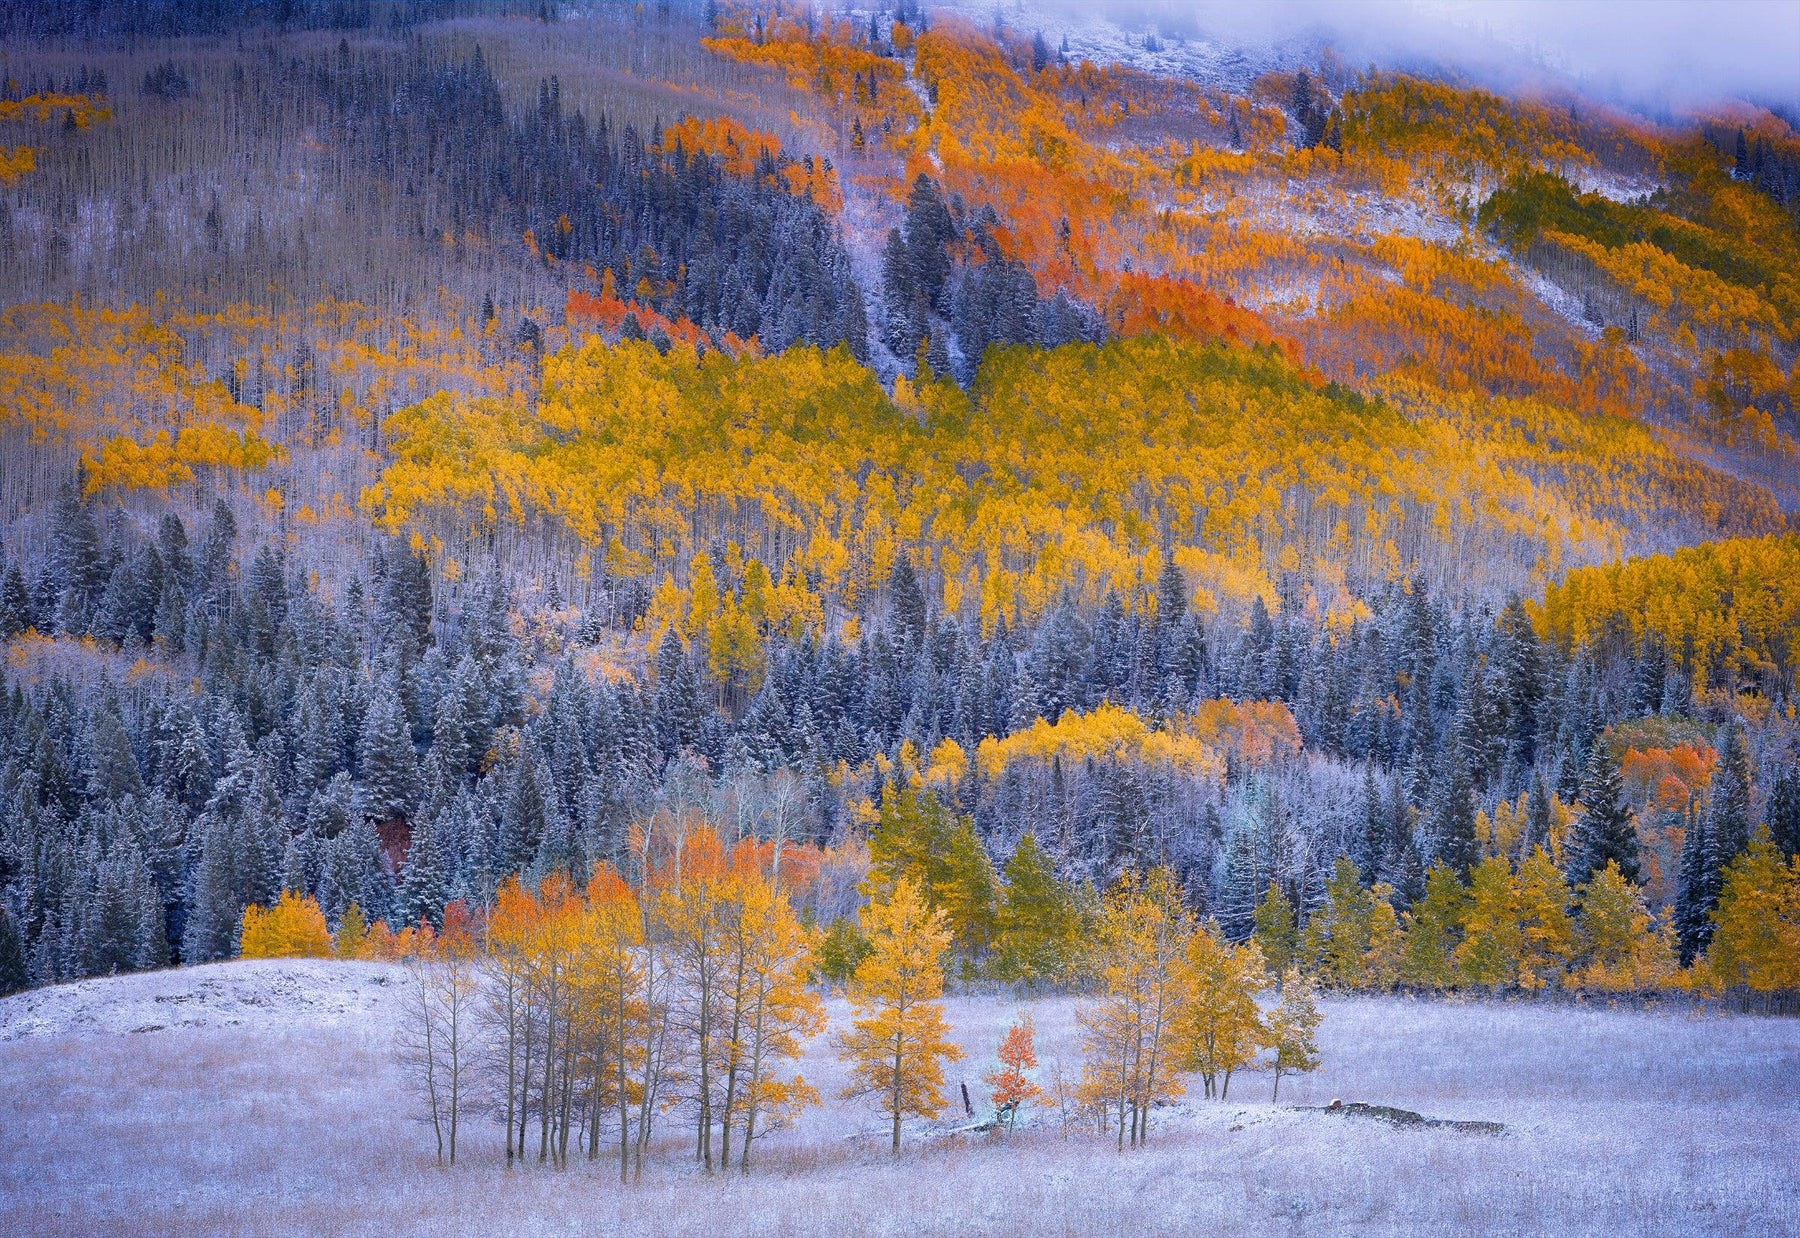 Snow covered field in front of a Autumn colored mountainside in Aspen Colorado